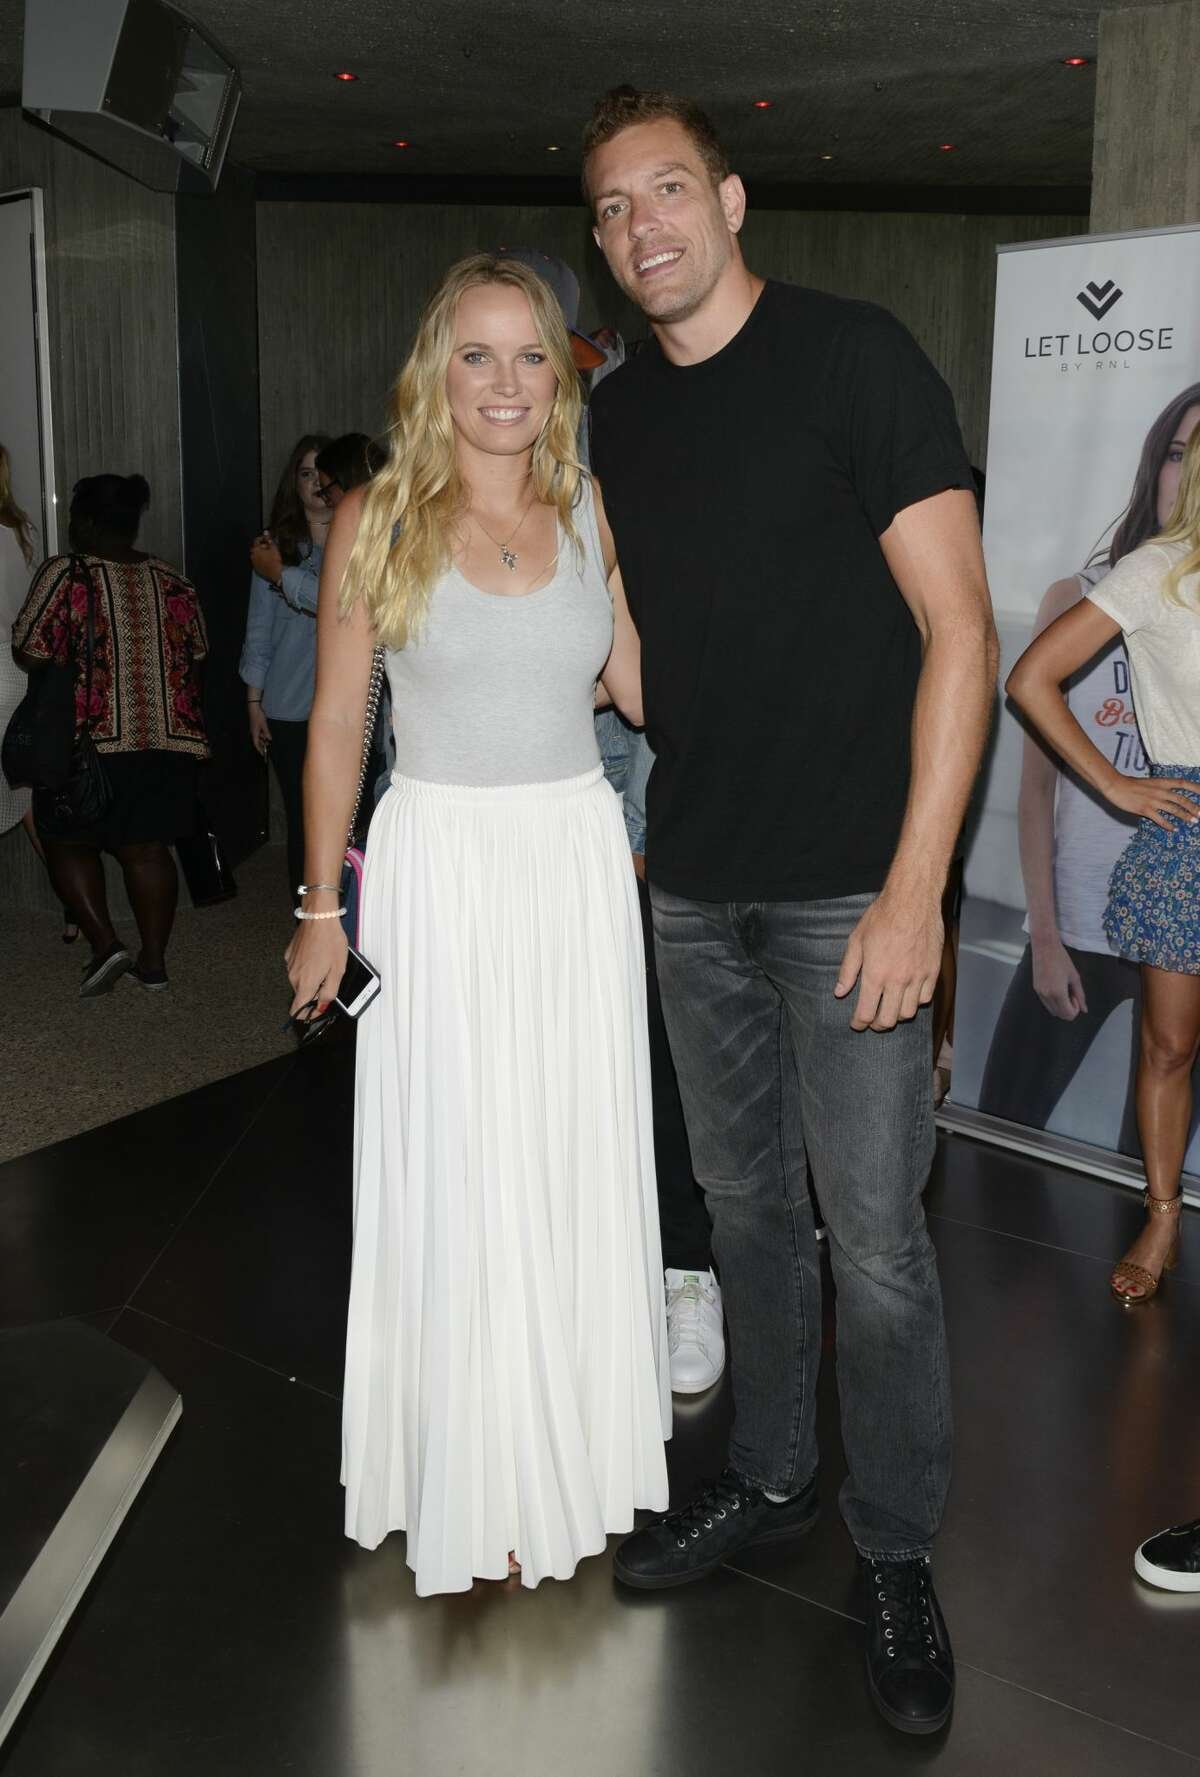 Tennis Player Caroline Wozniacki (L) and NBA Player David Lee attend 2016 ESPYs Talent Resources Sports Luxury Lounge on July 12, 2016 in Los Angeles, California. (Photo by Michael Bezjian/Getty Images for Talent Resources Sports)